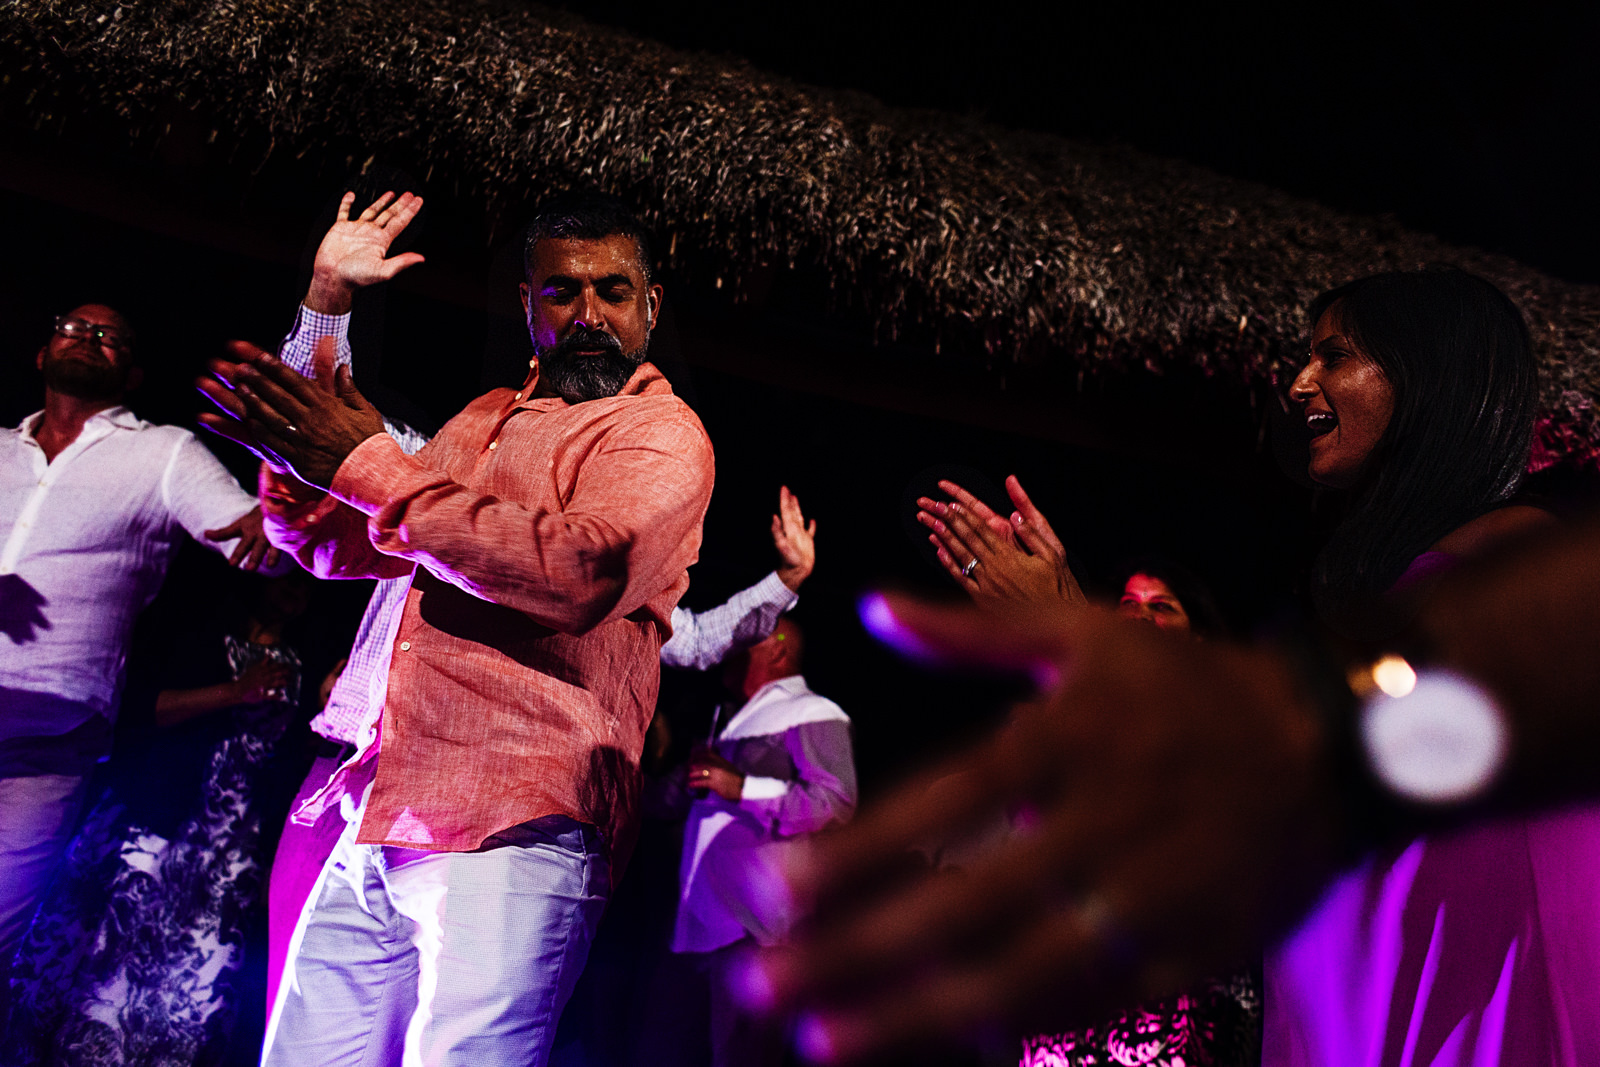 Groom dances hindi music style around the wedding guests clapping